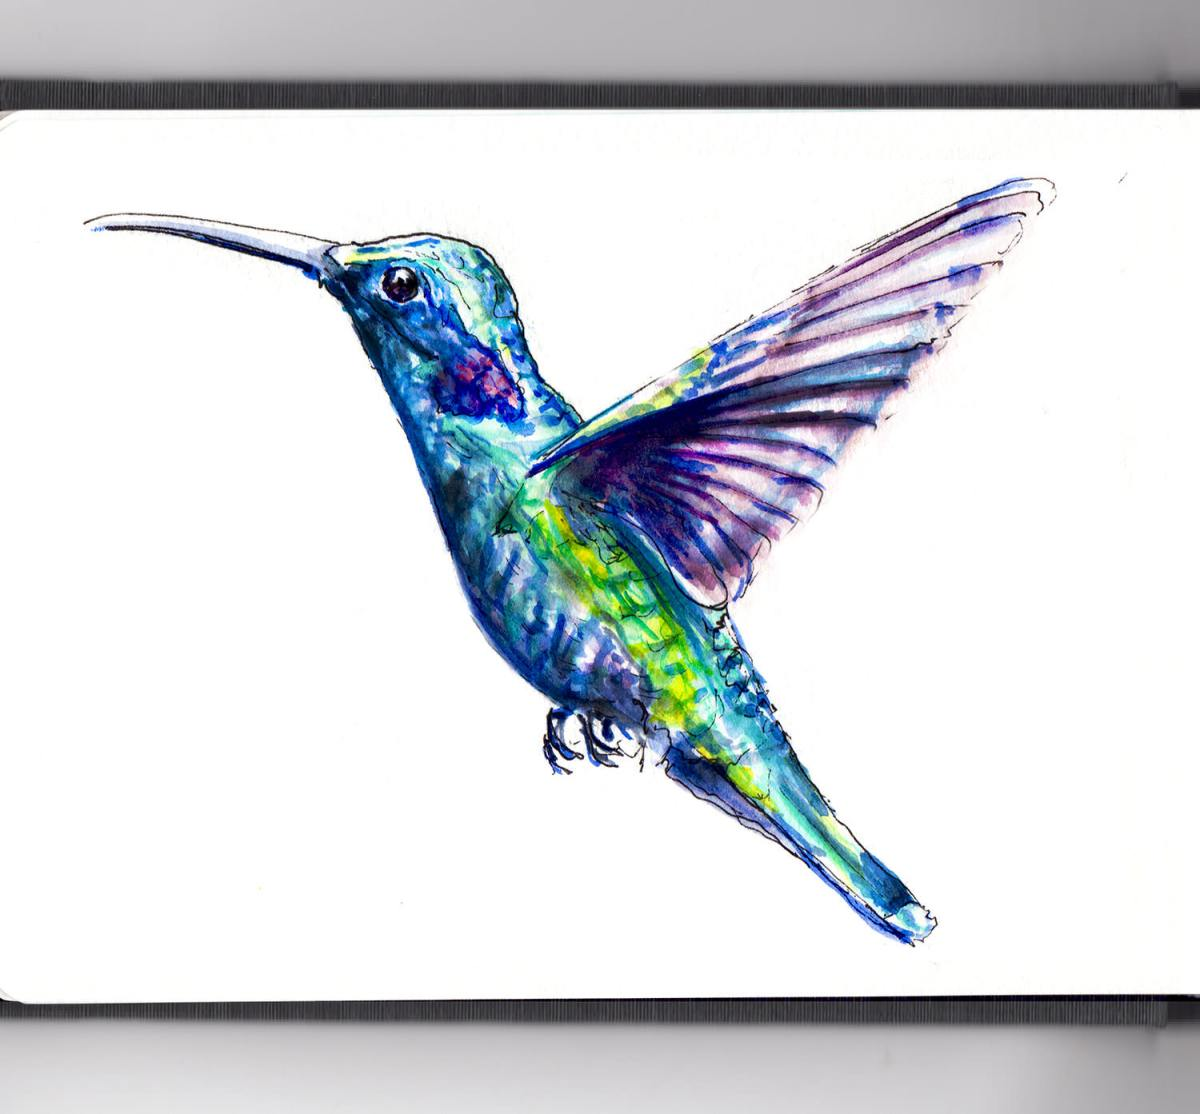 Day 21 - World Watercolor Month - A Hummingbird In The Wind - Doodlewash